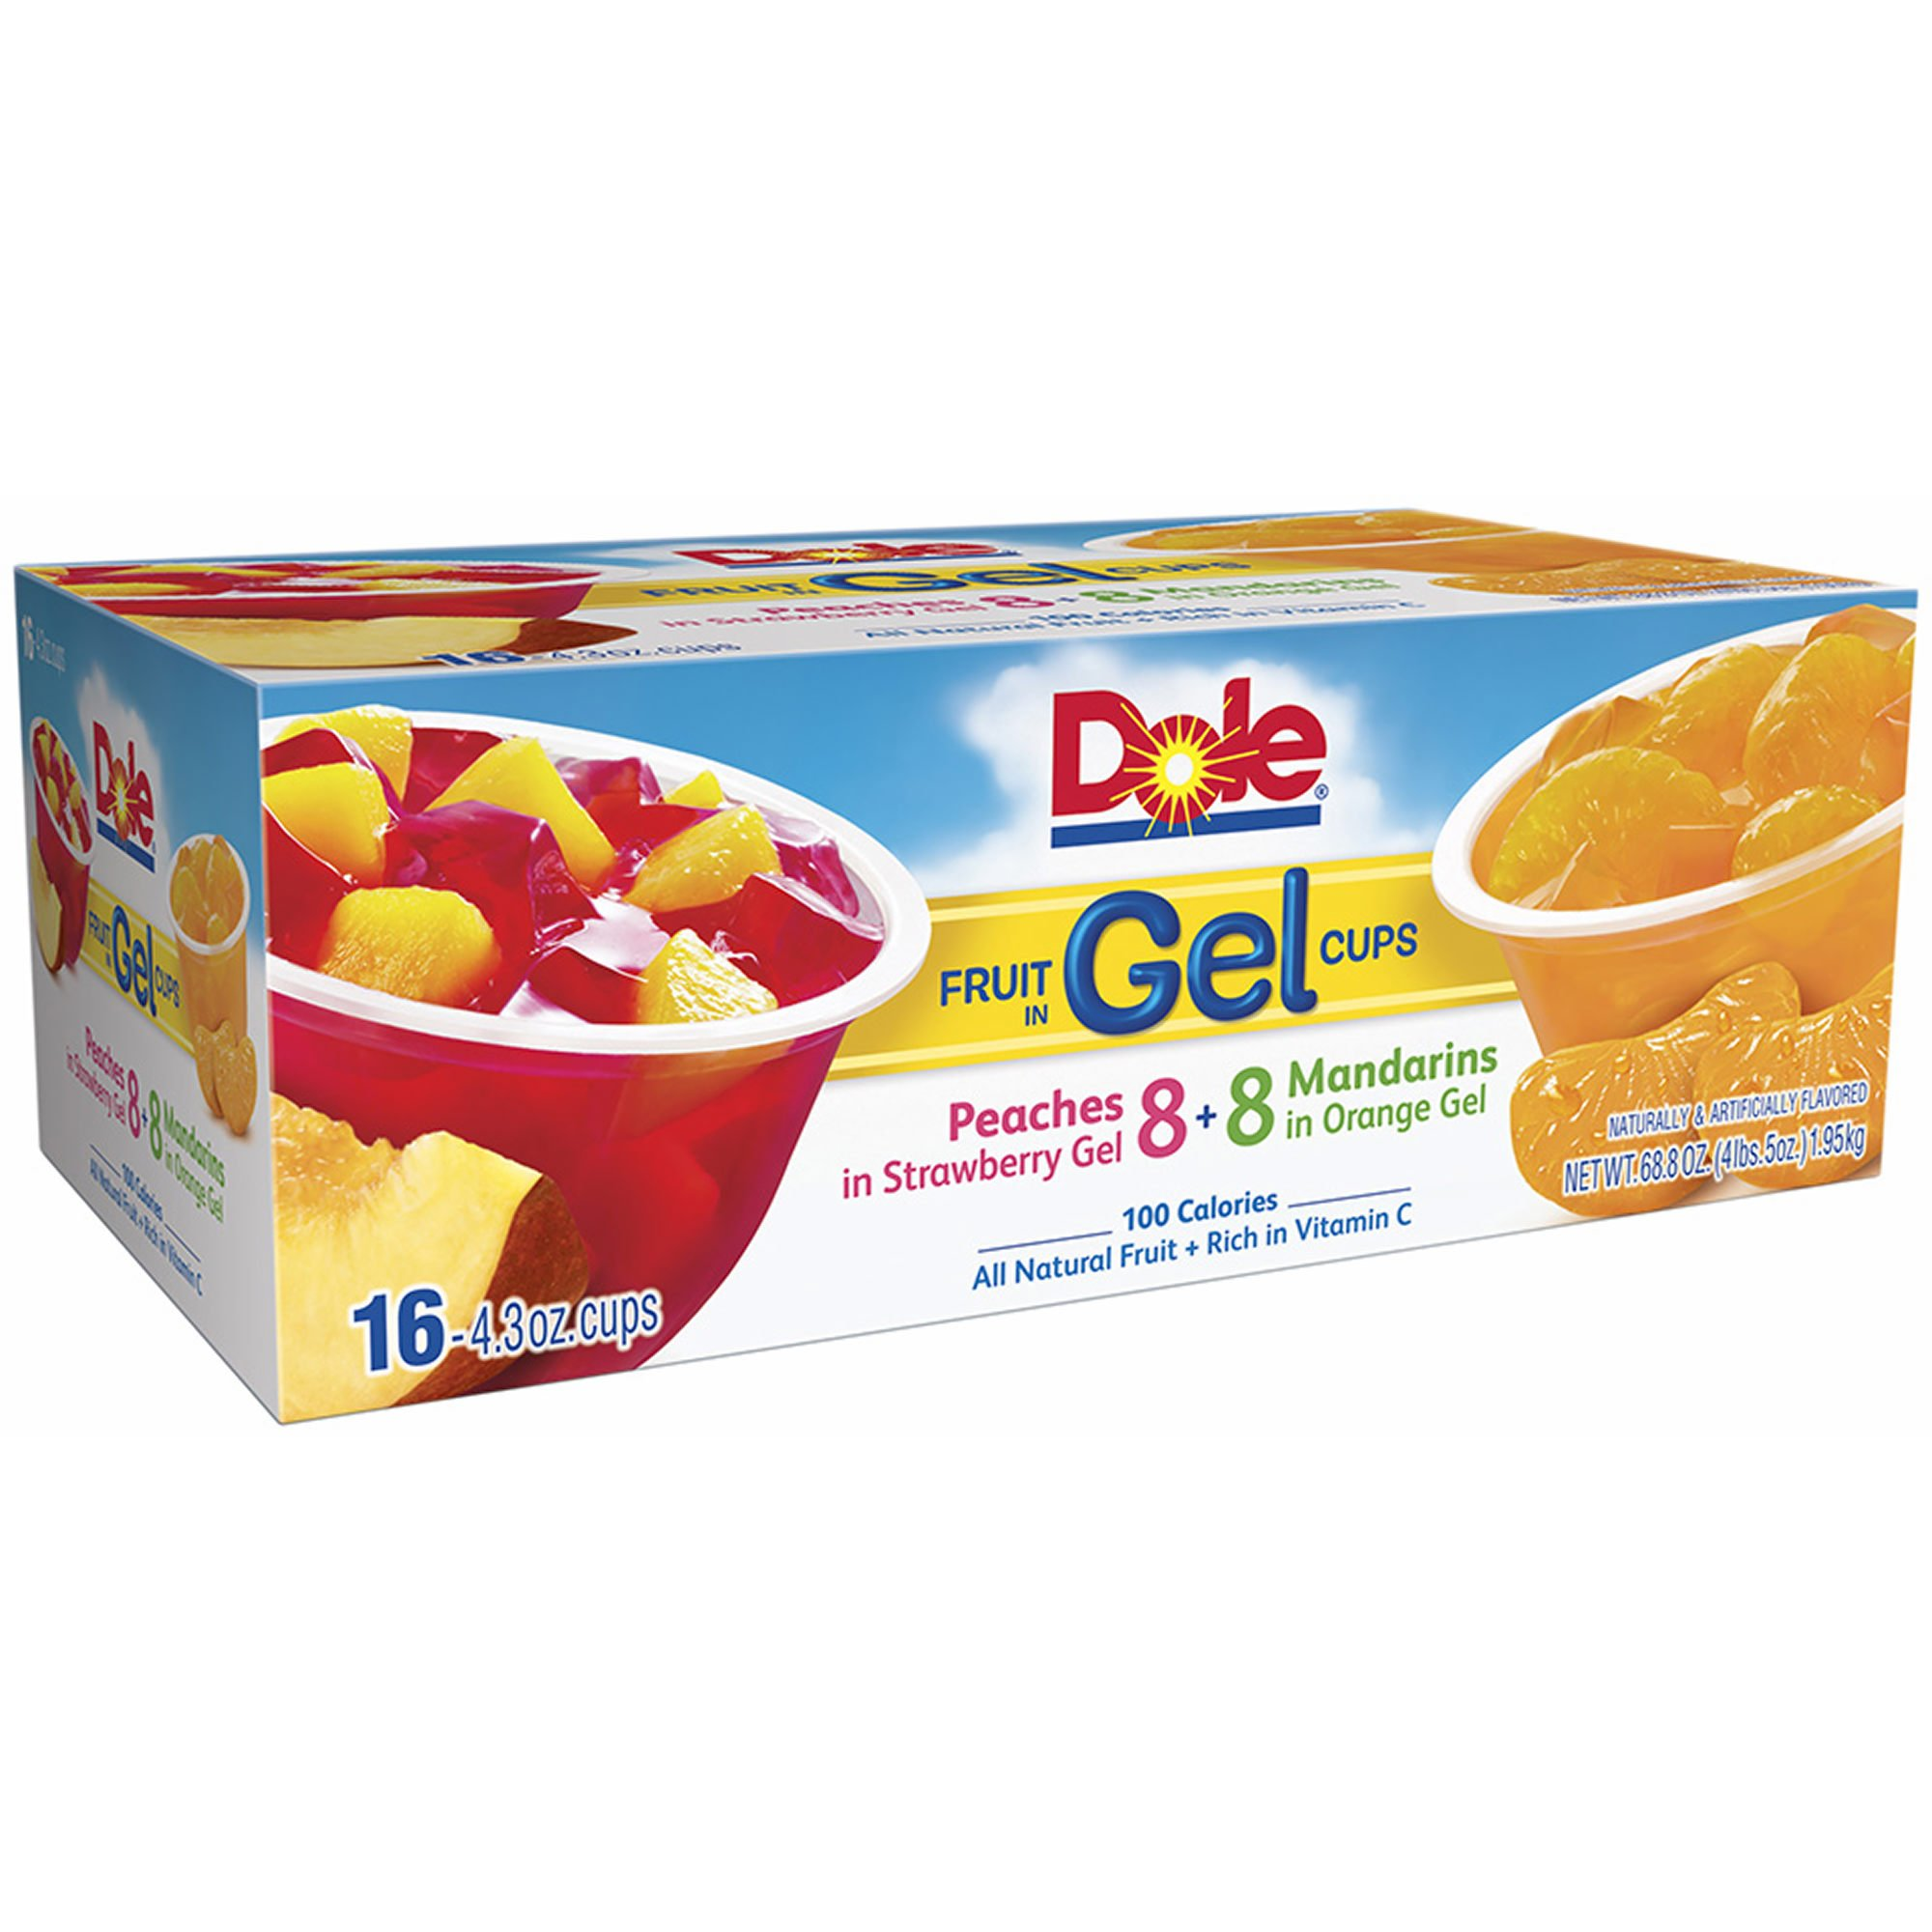 Dole Fruit in Gel Cups Variety Pack, 16 pk./4.3 oz. (pack of 6) by Dole